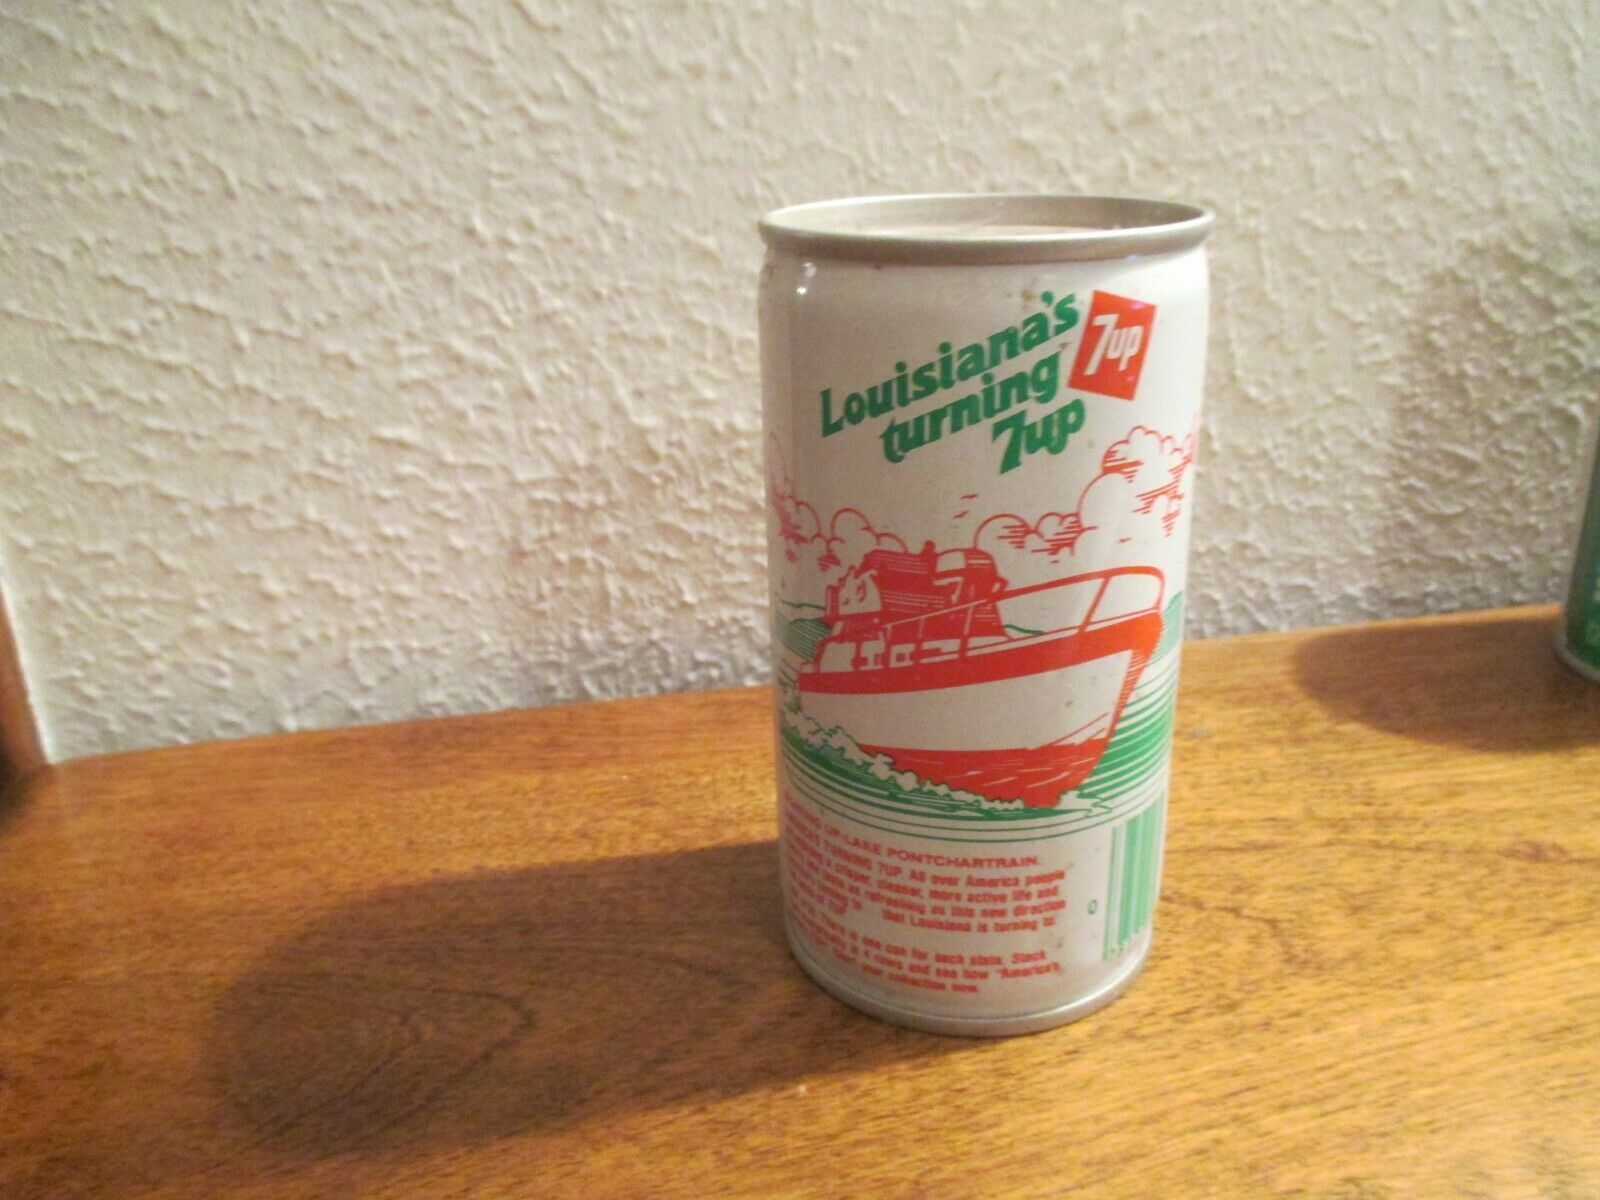 Primary image for Louisiana LA Turning 7up vintage pop soda metal can Lake Pontchartrain